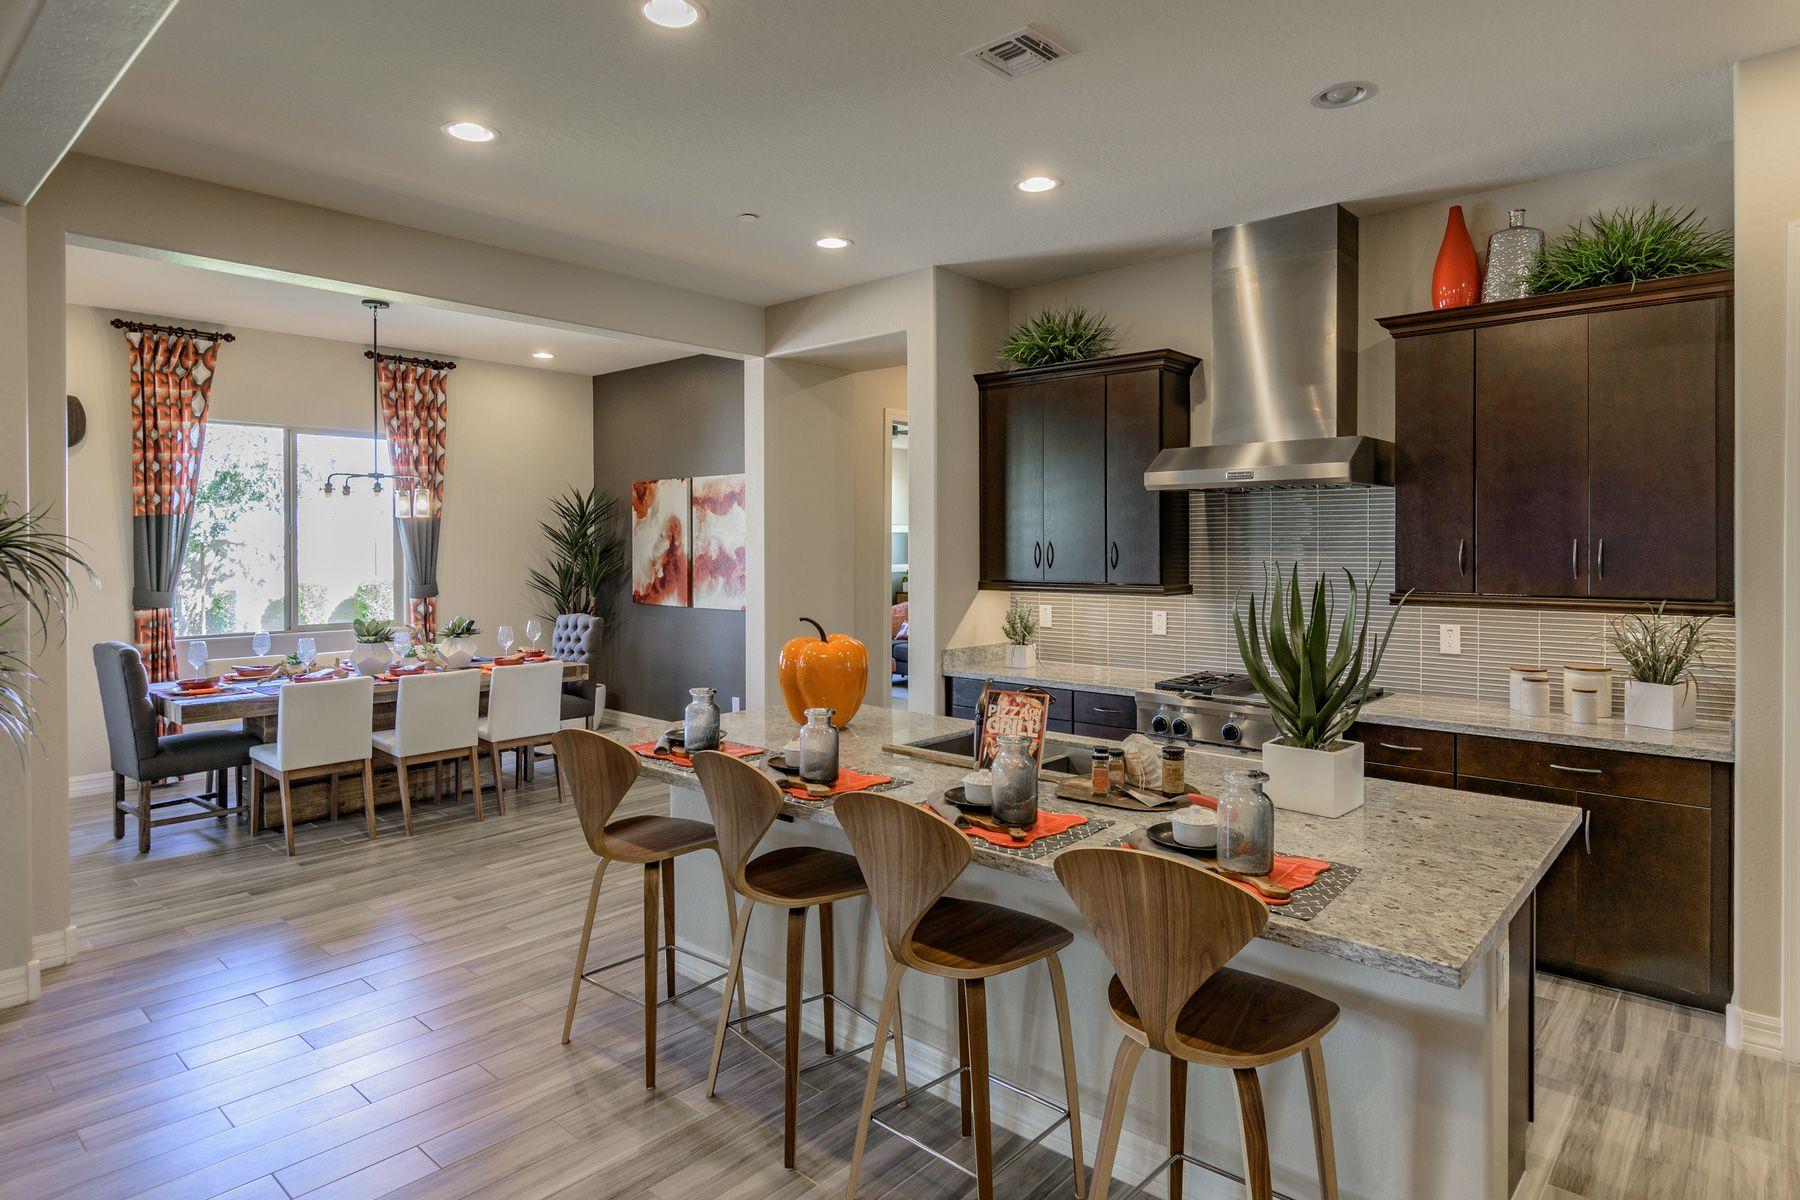 Encore at Eastmark - Taylor Morrison Homes. #realestate ... on curtis home design, imsi home design, romantic home design, hgtv home design, renaissance home design, michael graves home design, wolf home design,